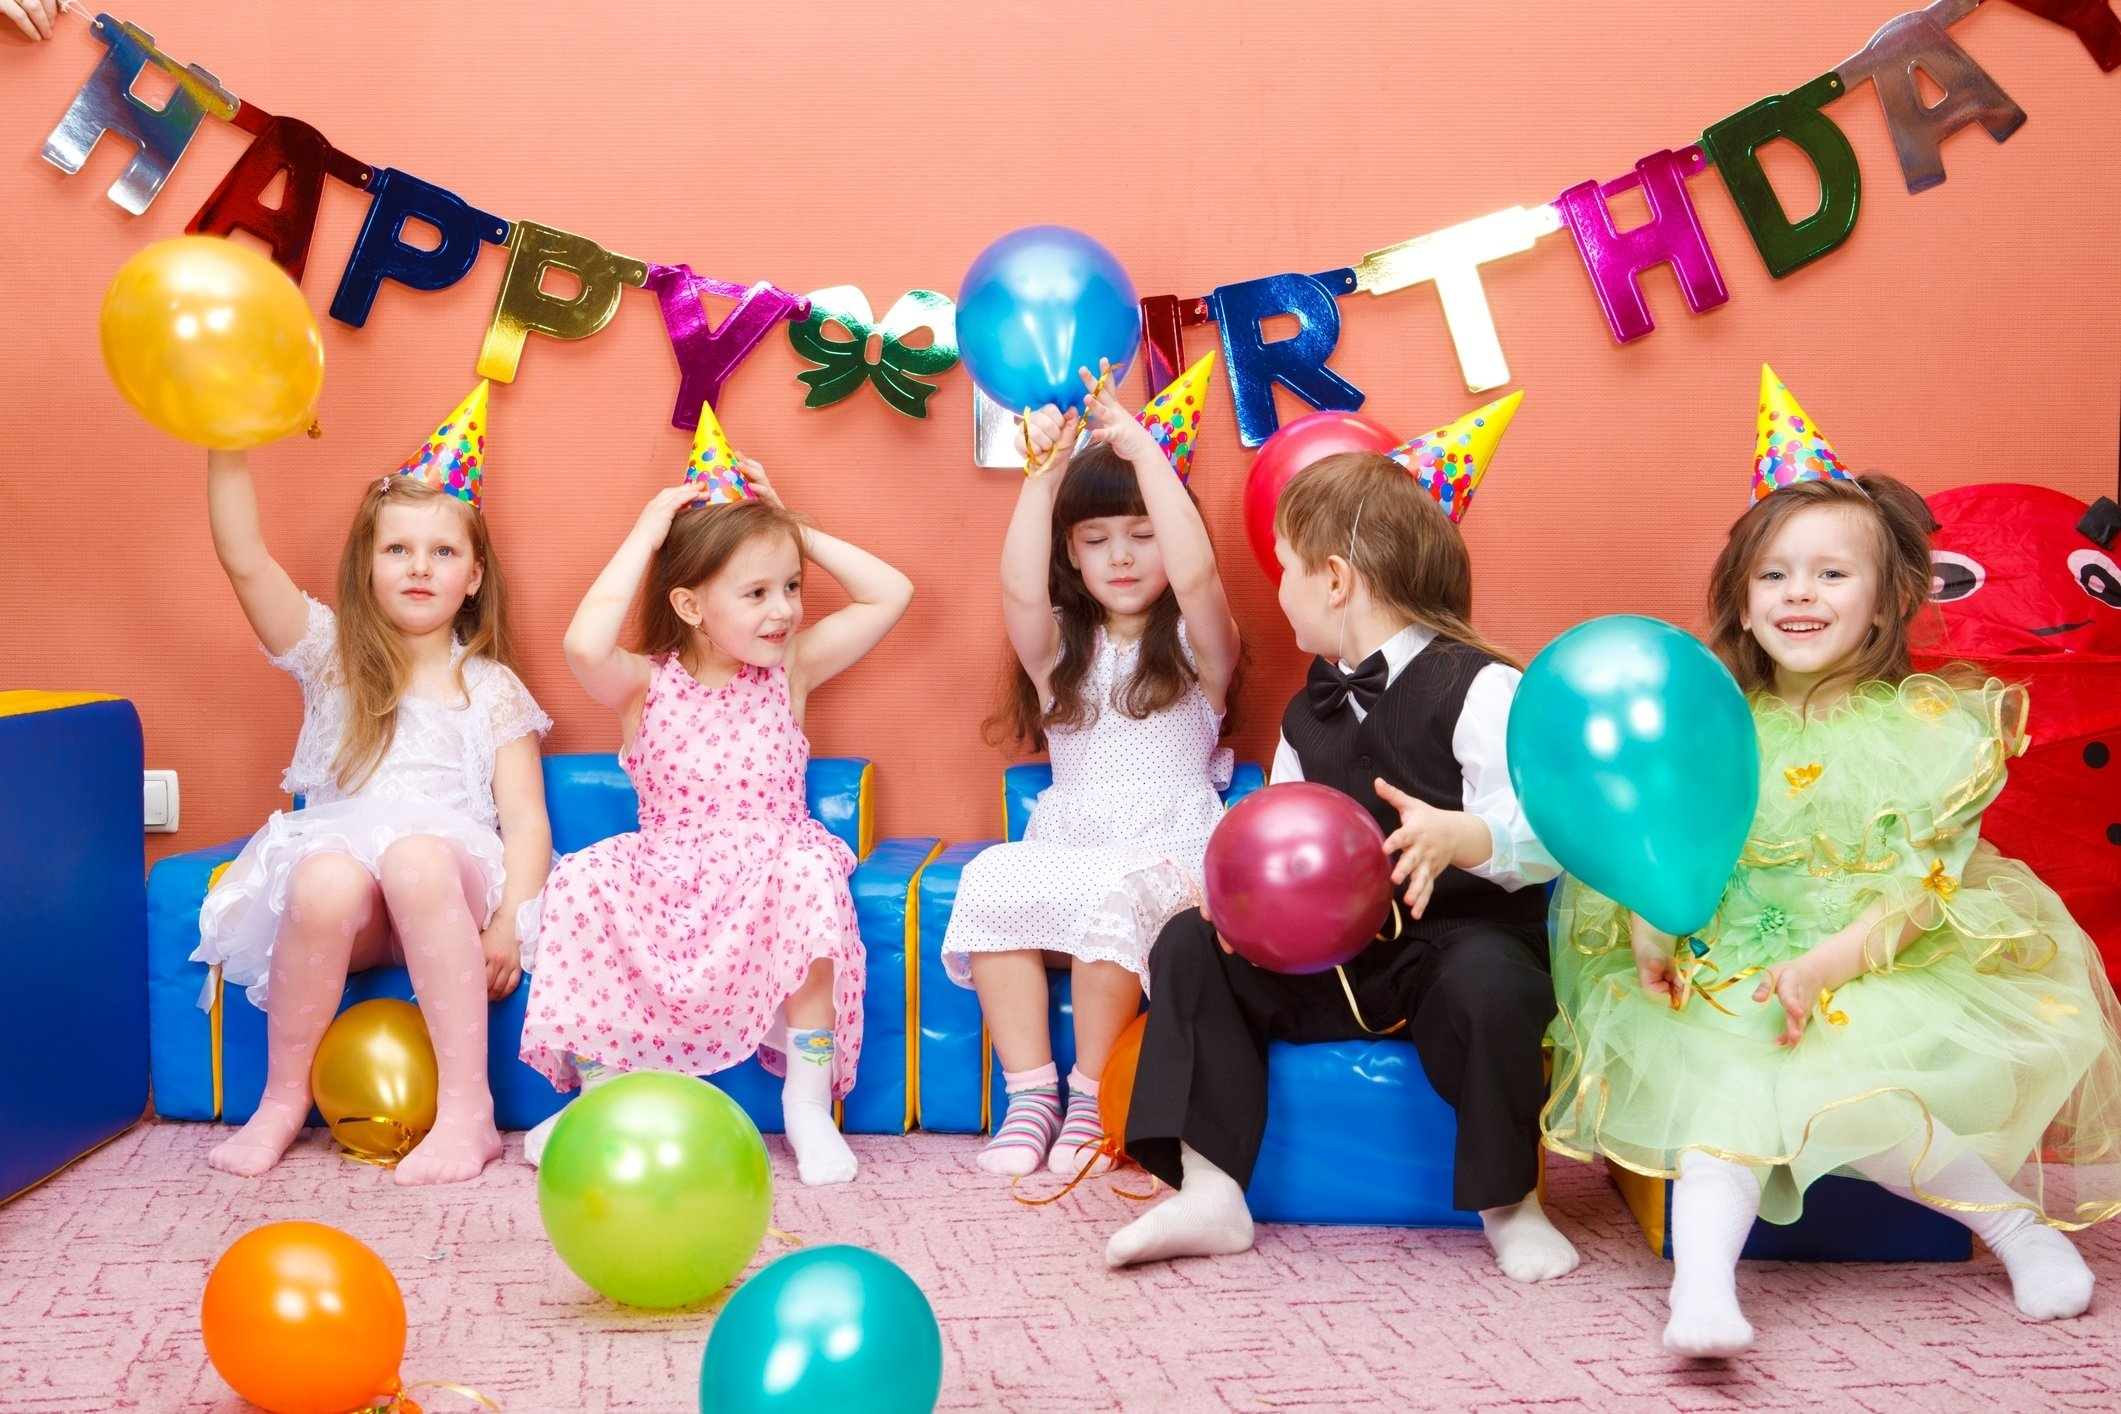 10 Stylish 11 Year Old Party Ideas 45 awesome 11 12 year old birthday party ideas birthday inspire 17